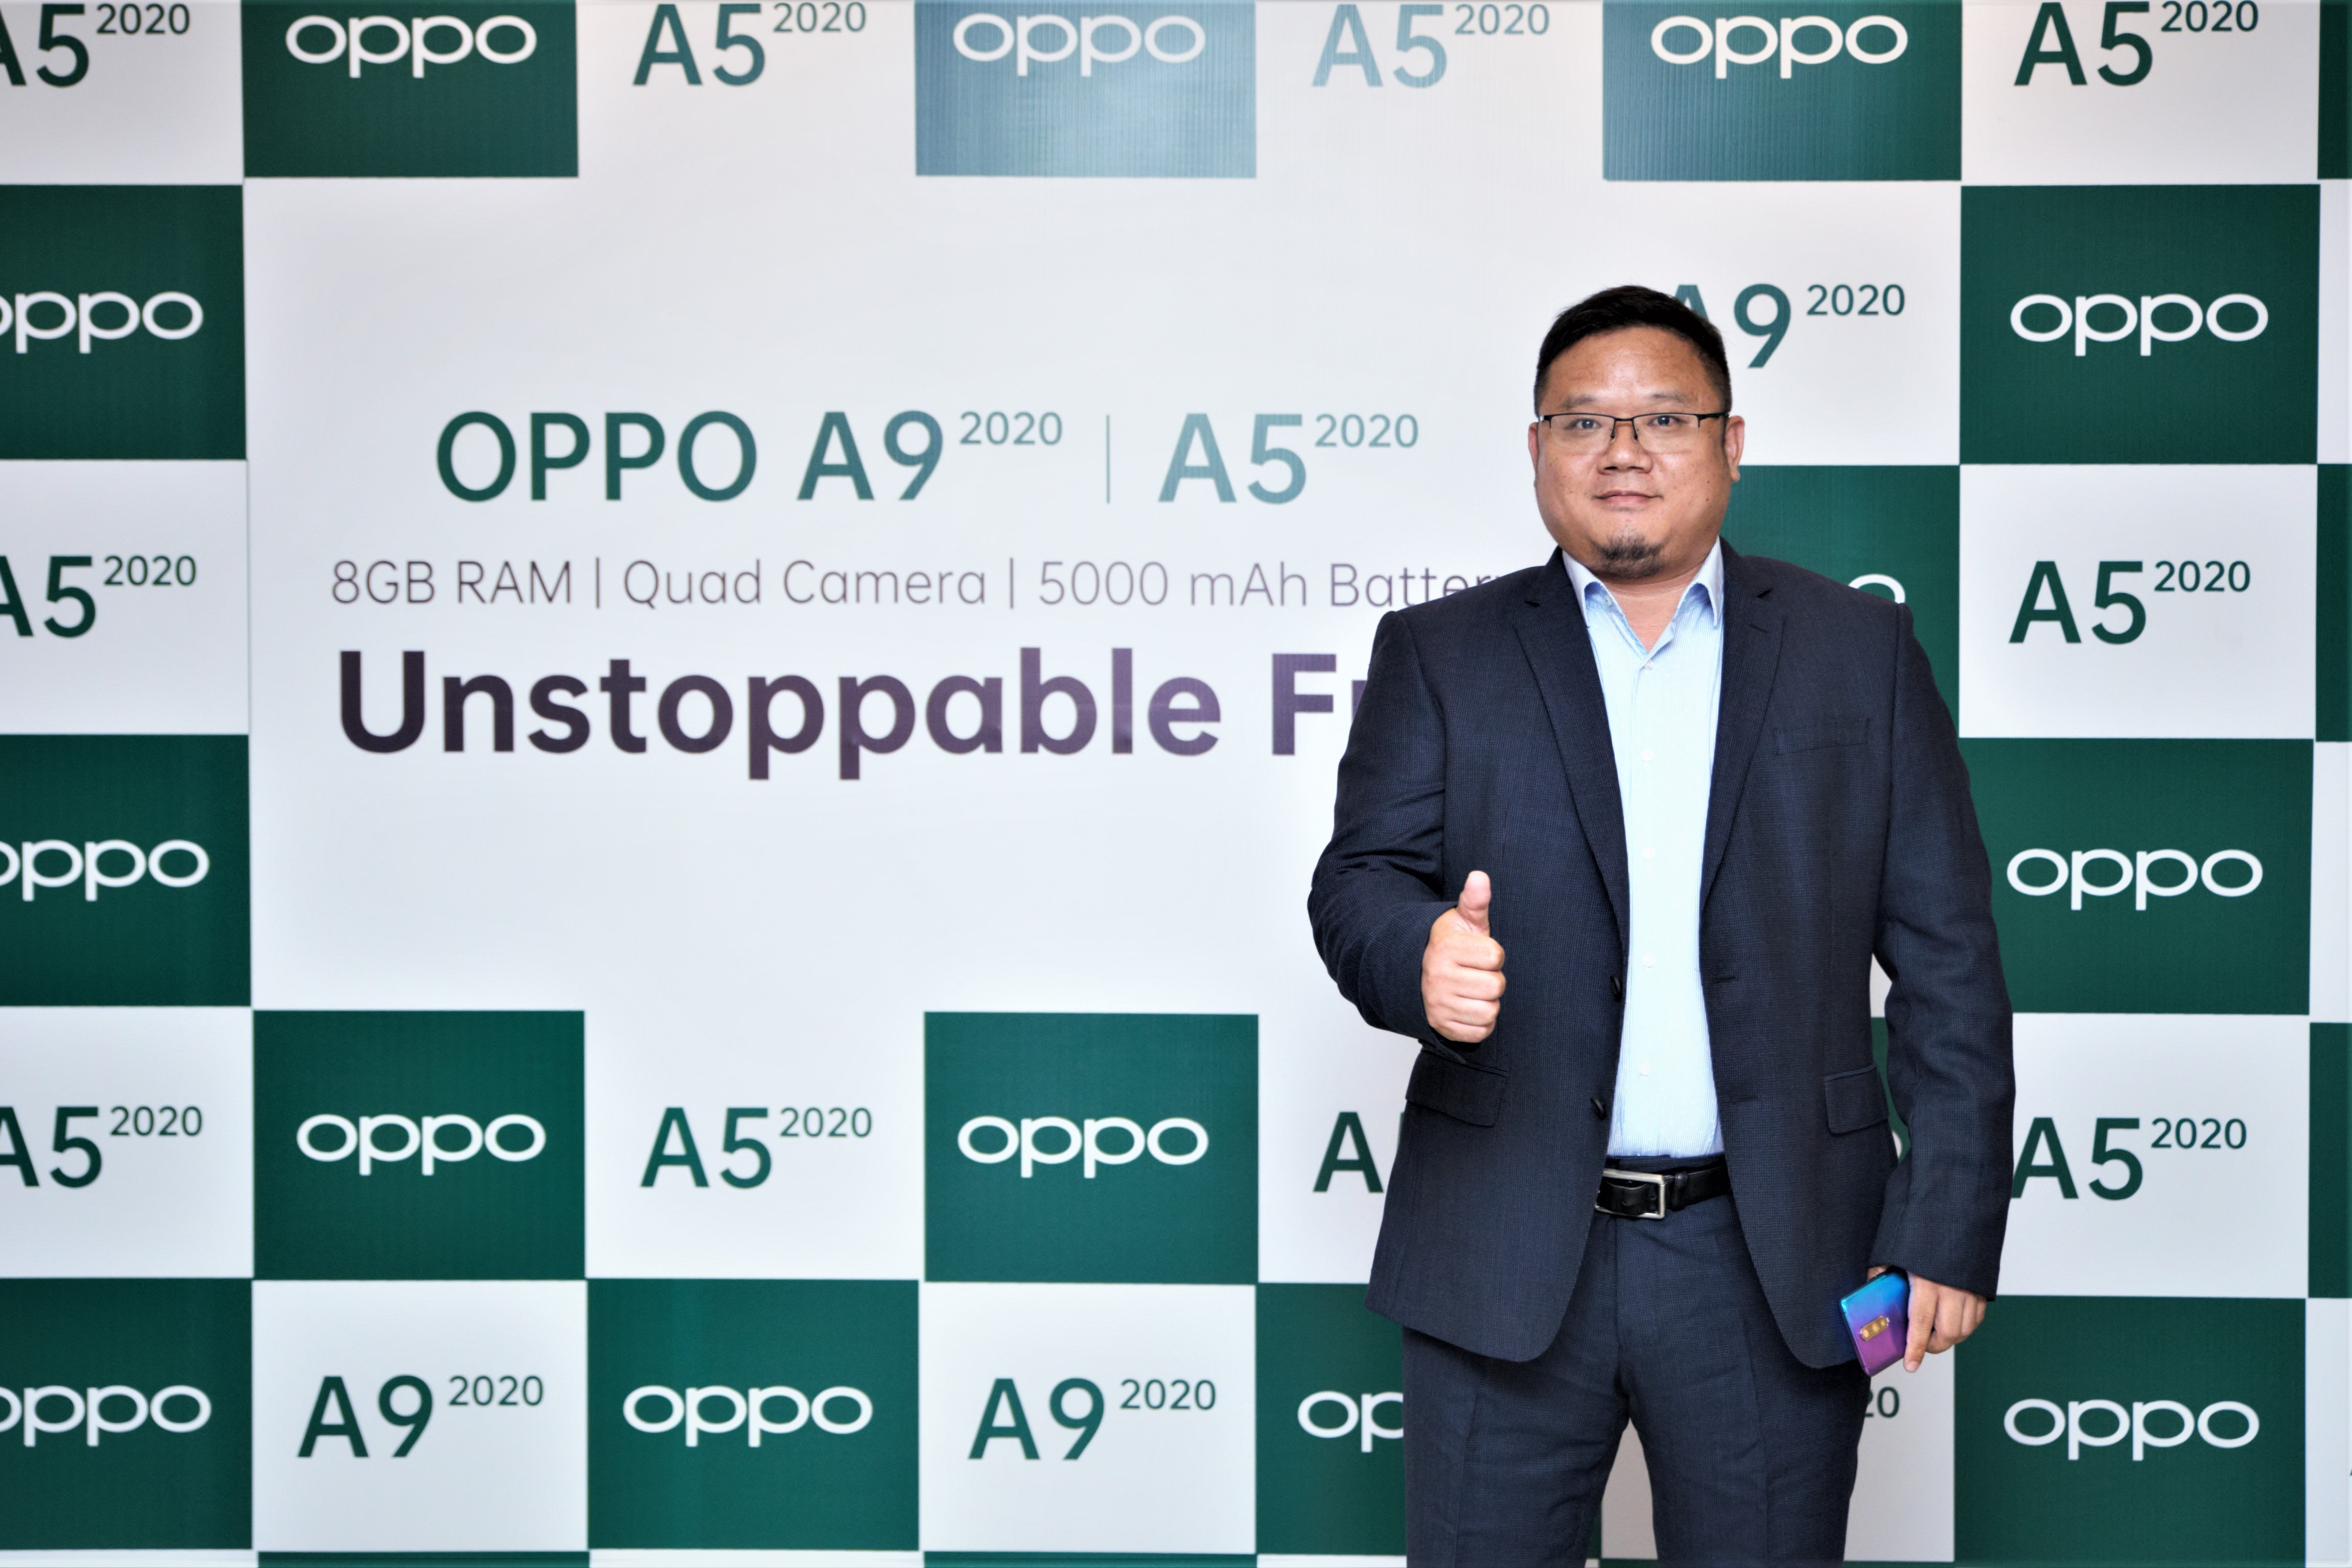 OPPO Officially Releases A-Series 2020 in Nepal, Combining High Quality and Affordability